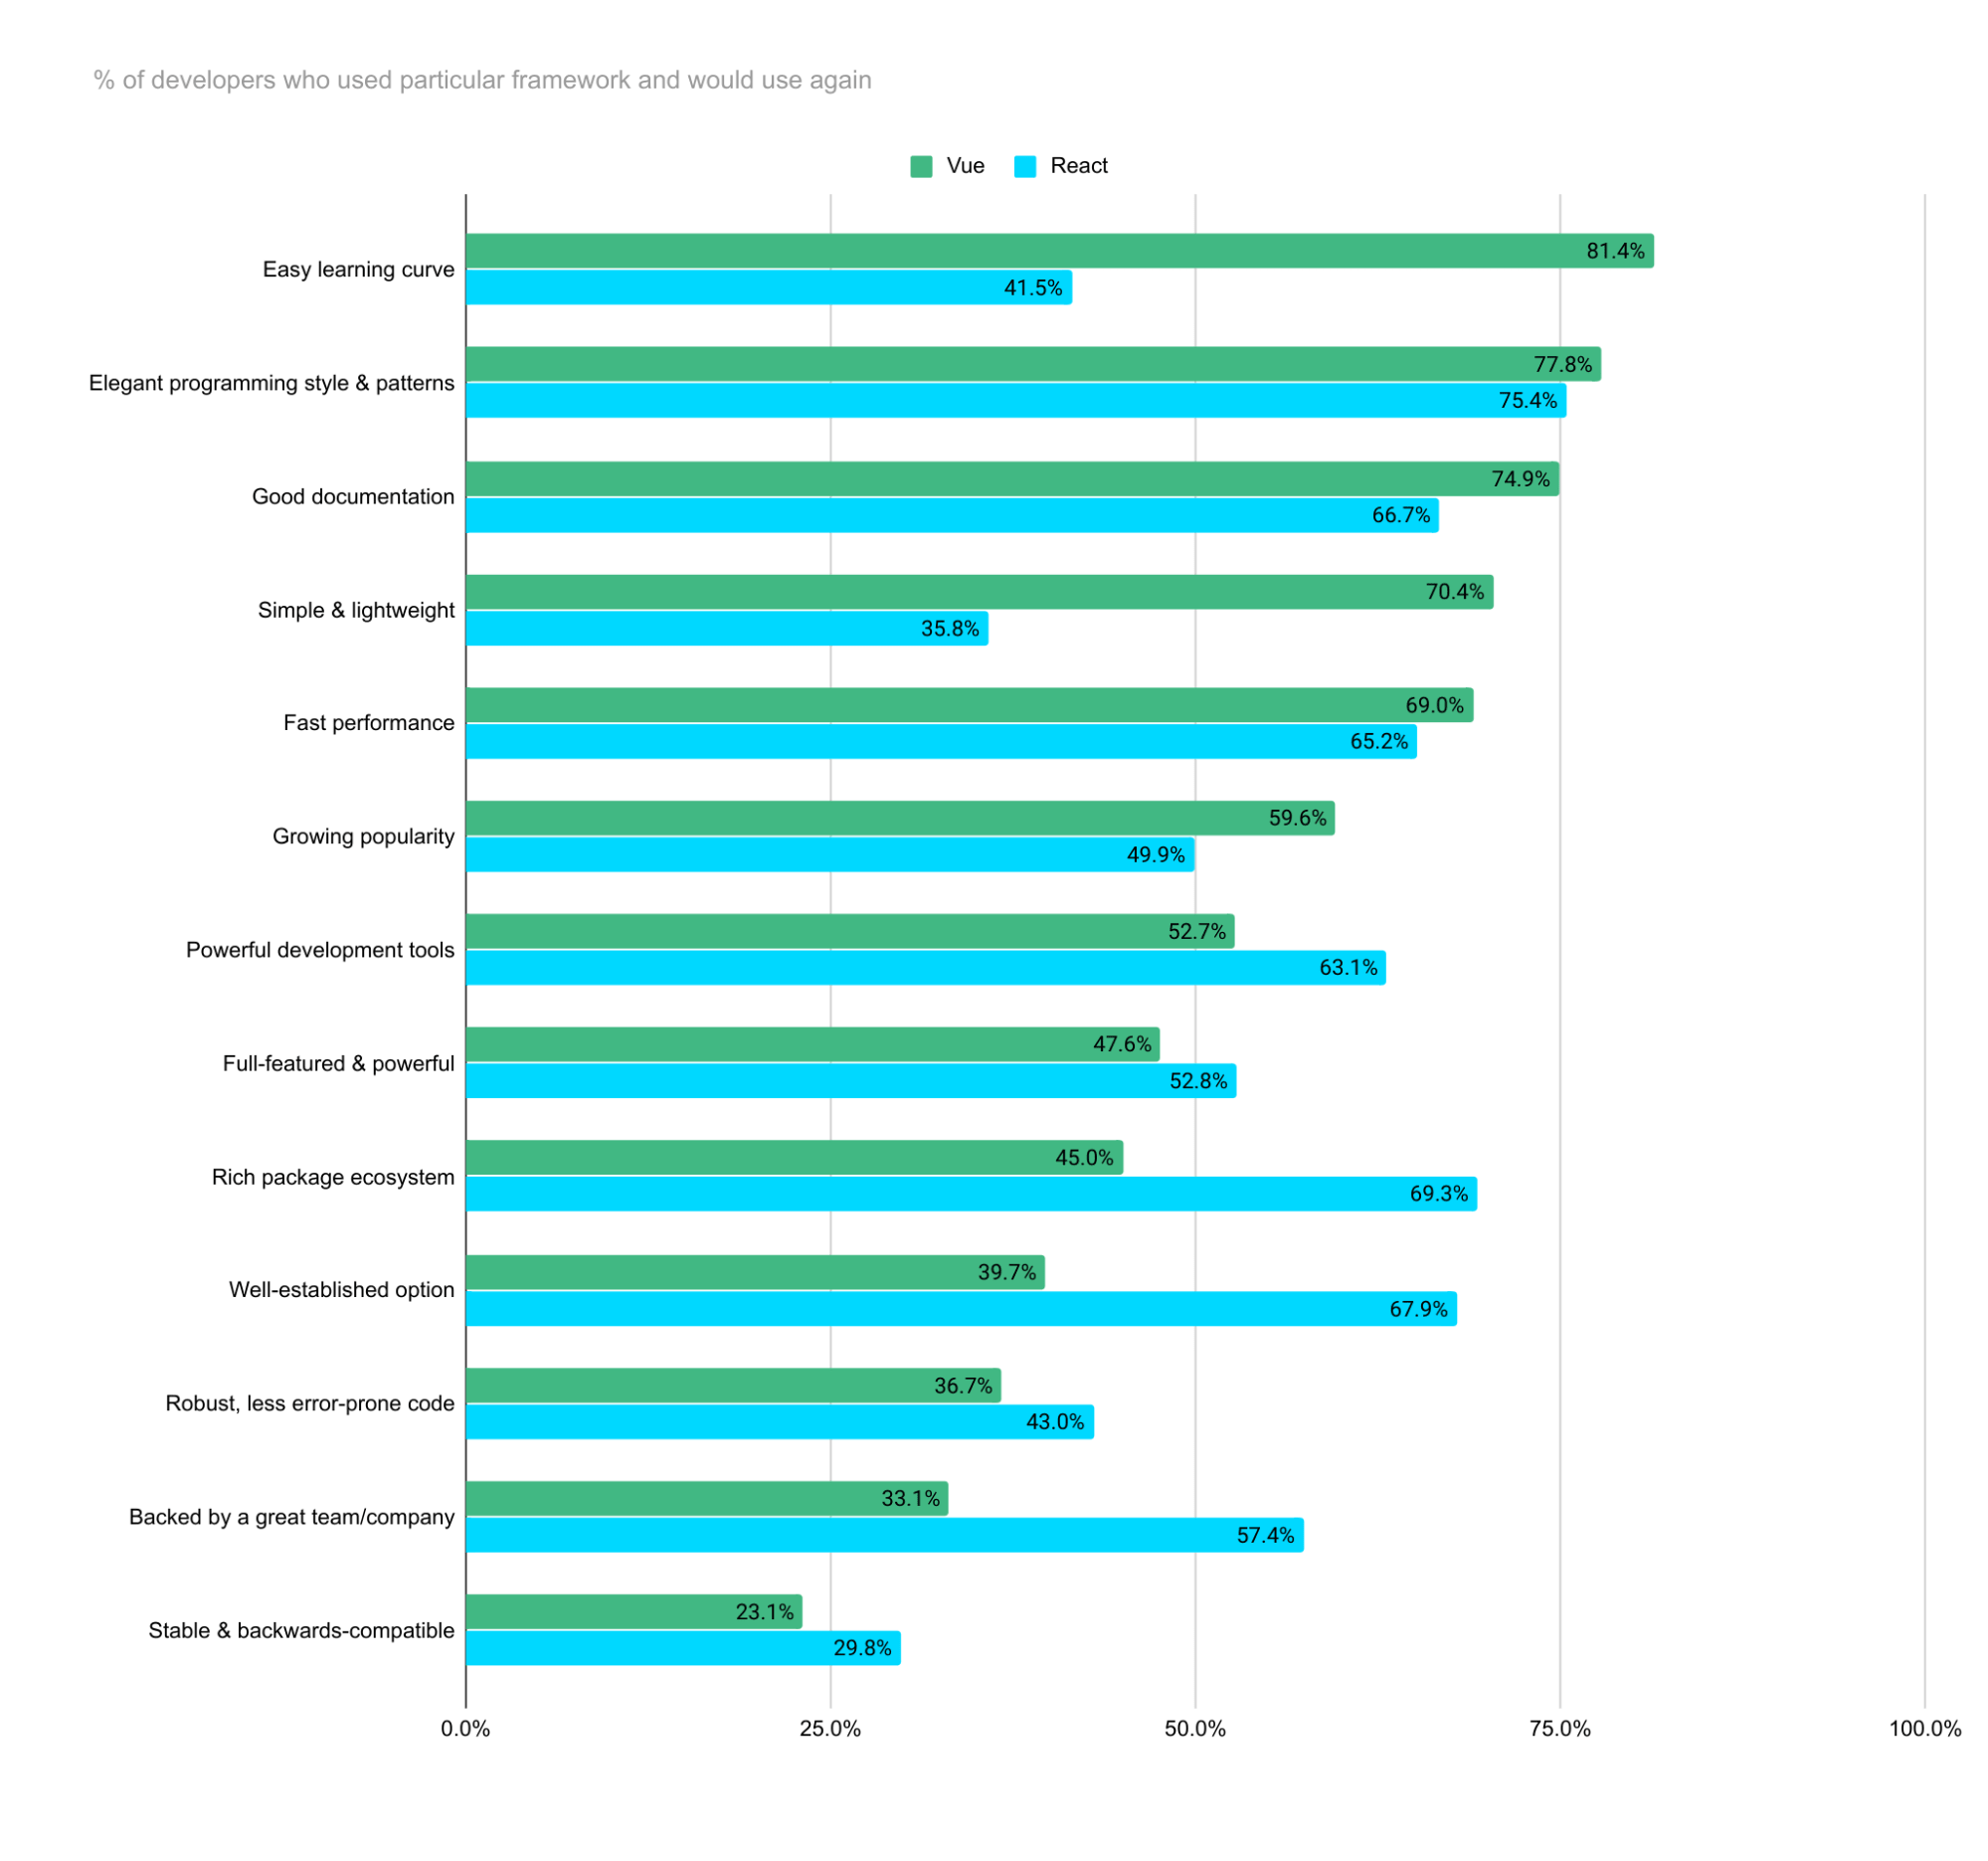 Vue vs React Percentage of developers who use particular framework